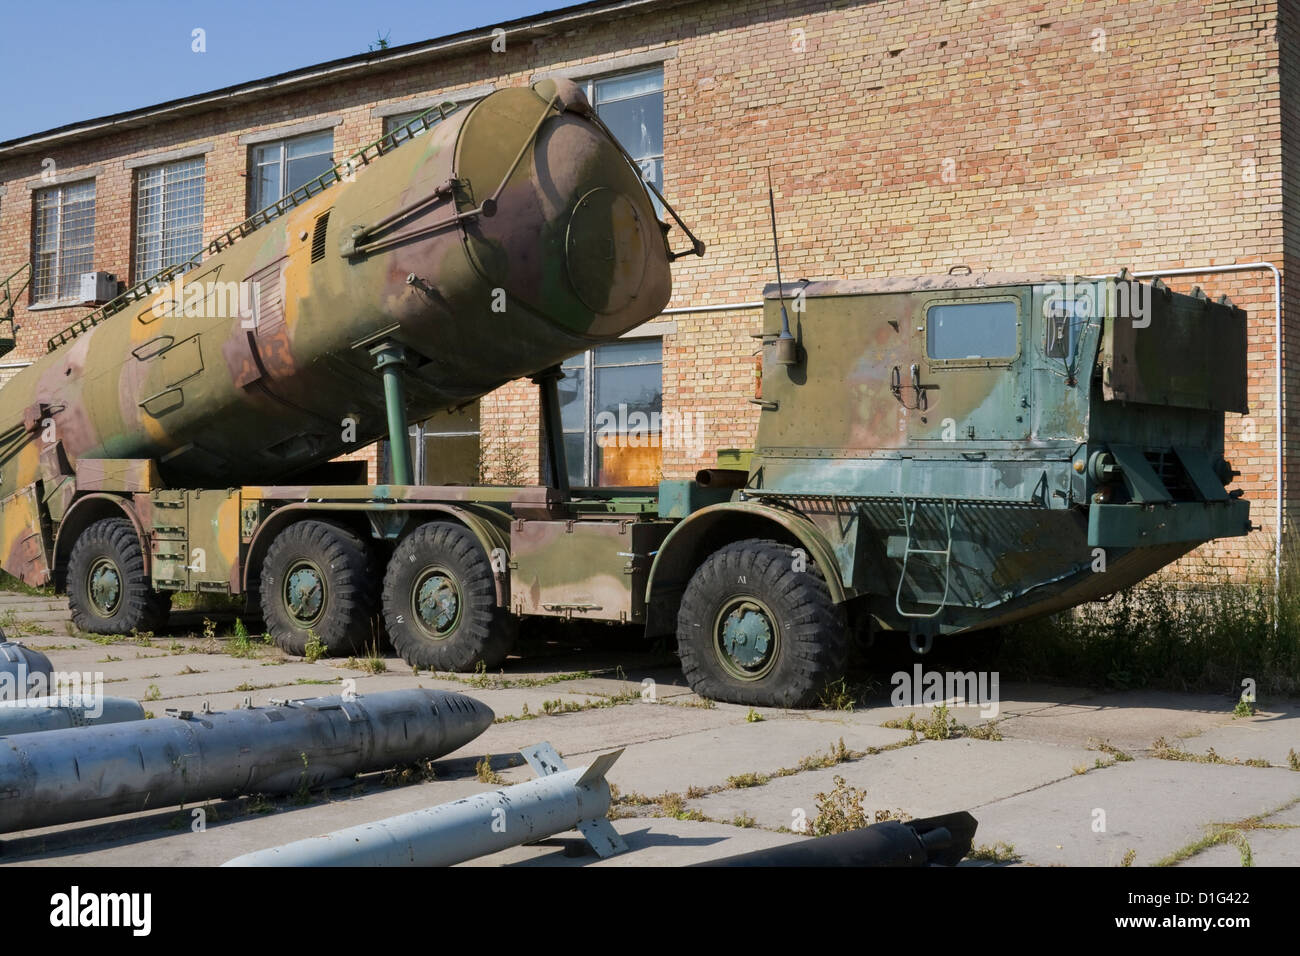 Abandoned soviet ballistic nuclear missiles launcher - Stock Image